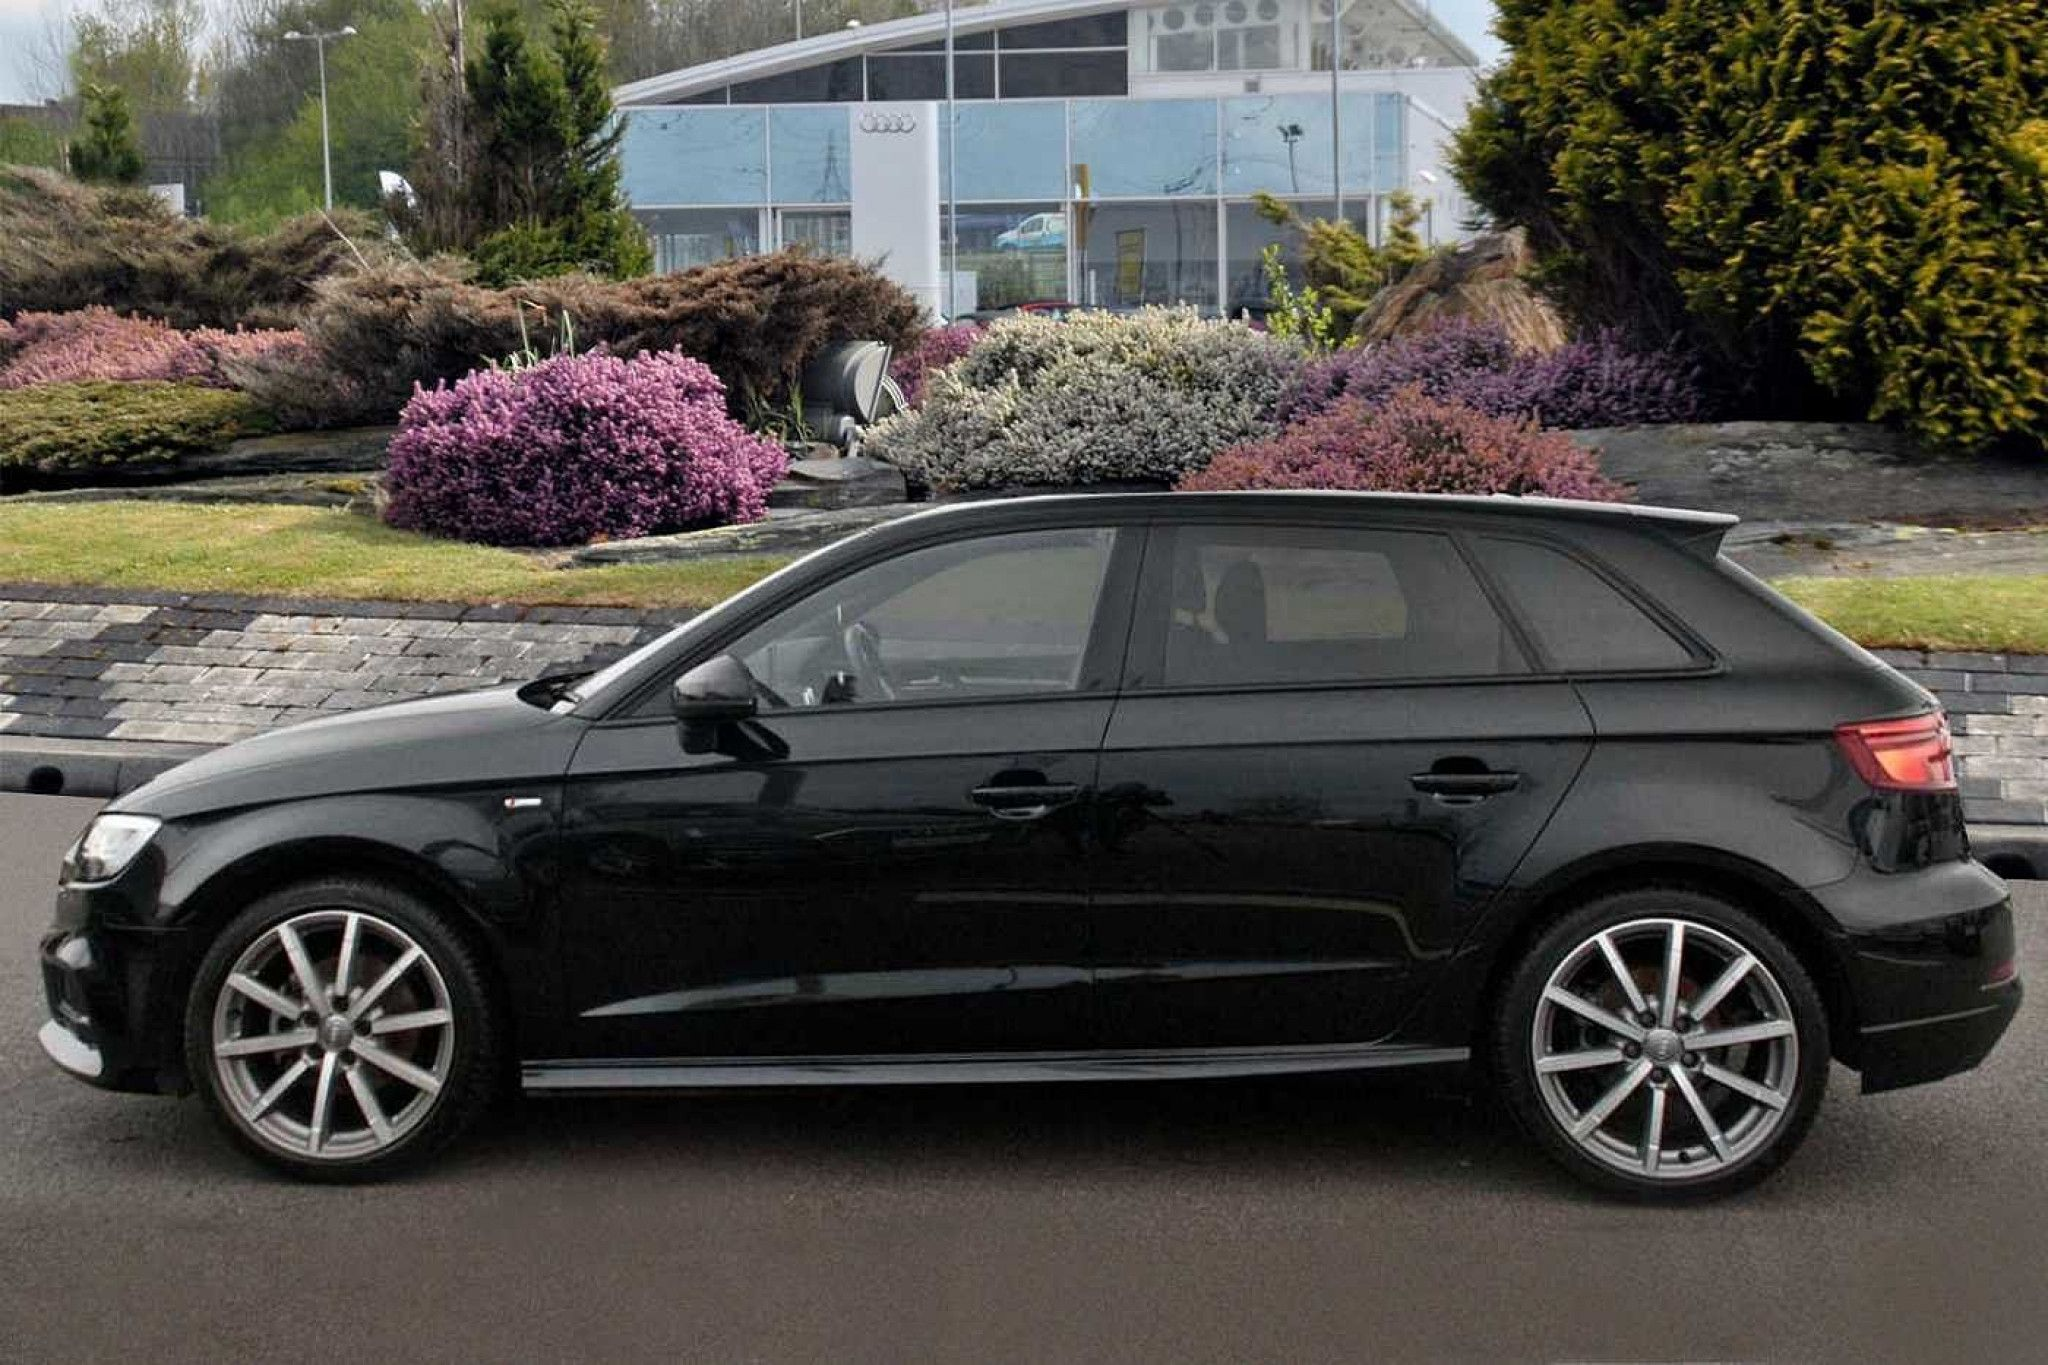 Audi A3 35 Tfsi Black Edition 5Dr S Tronic in 2020 Audi